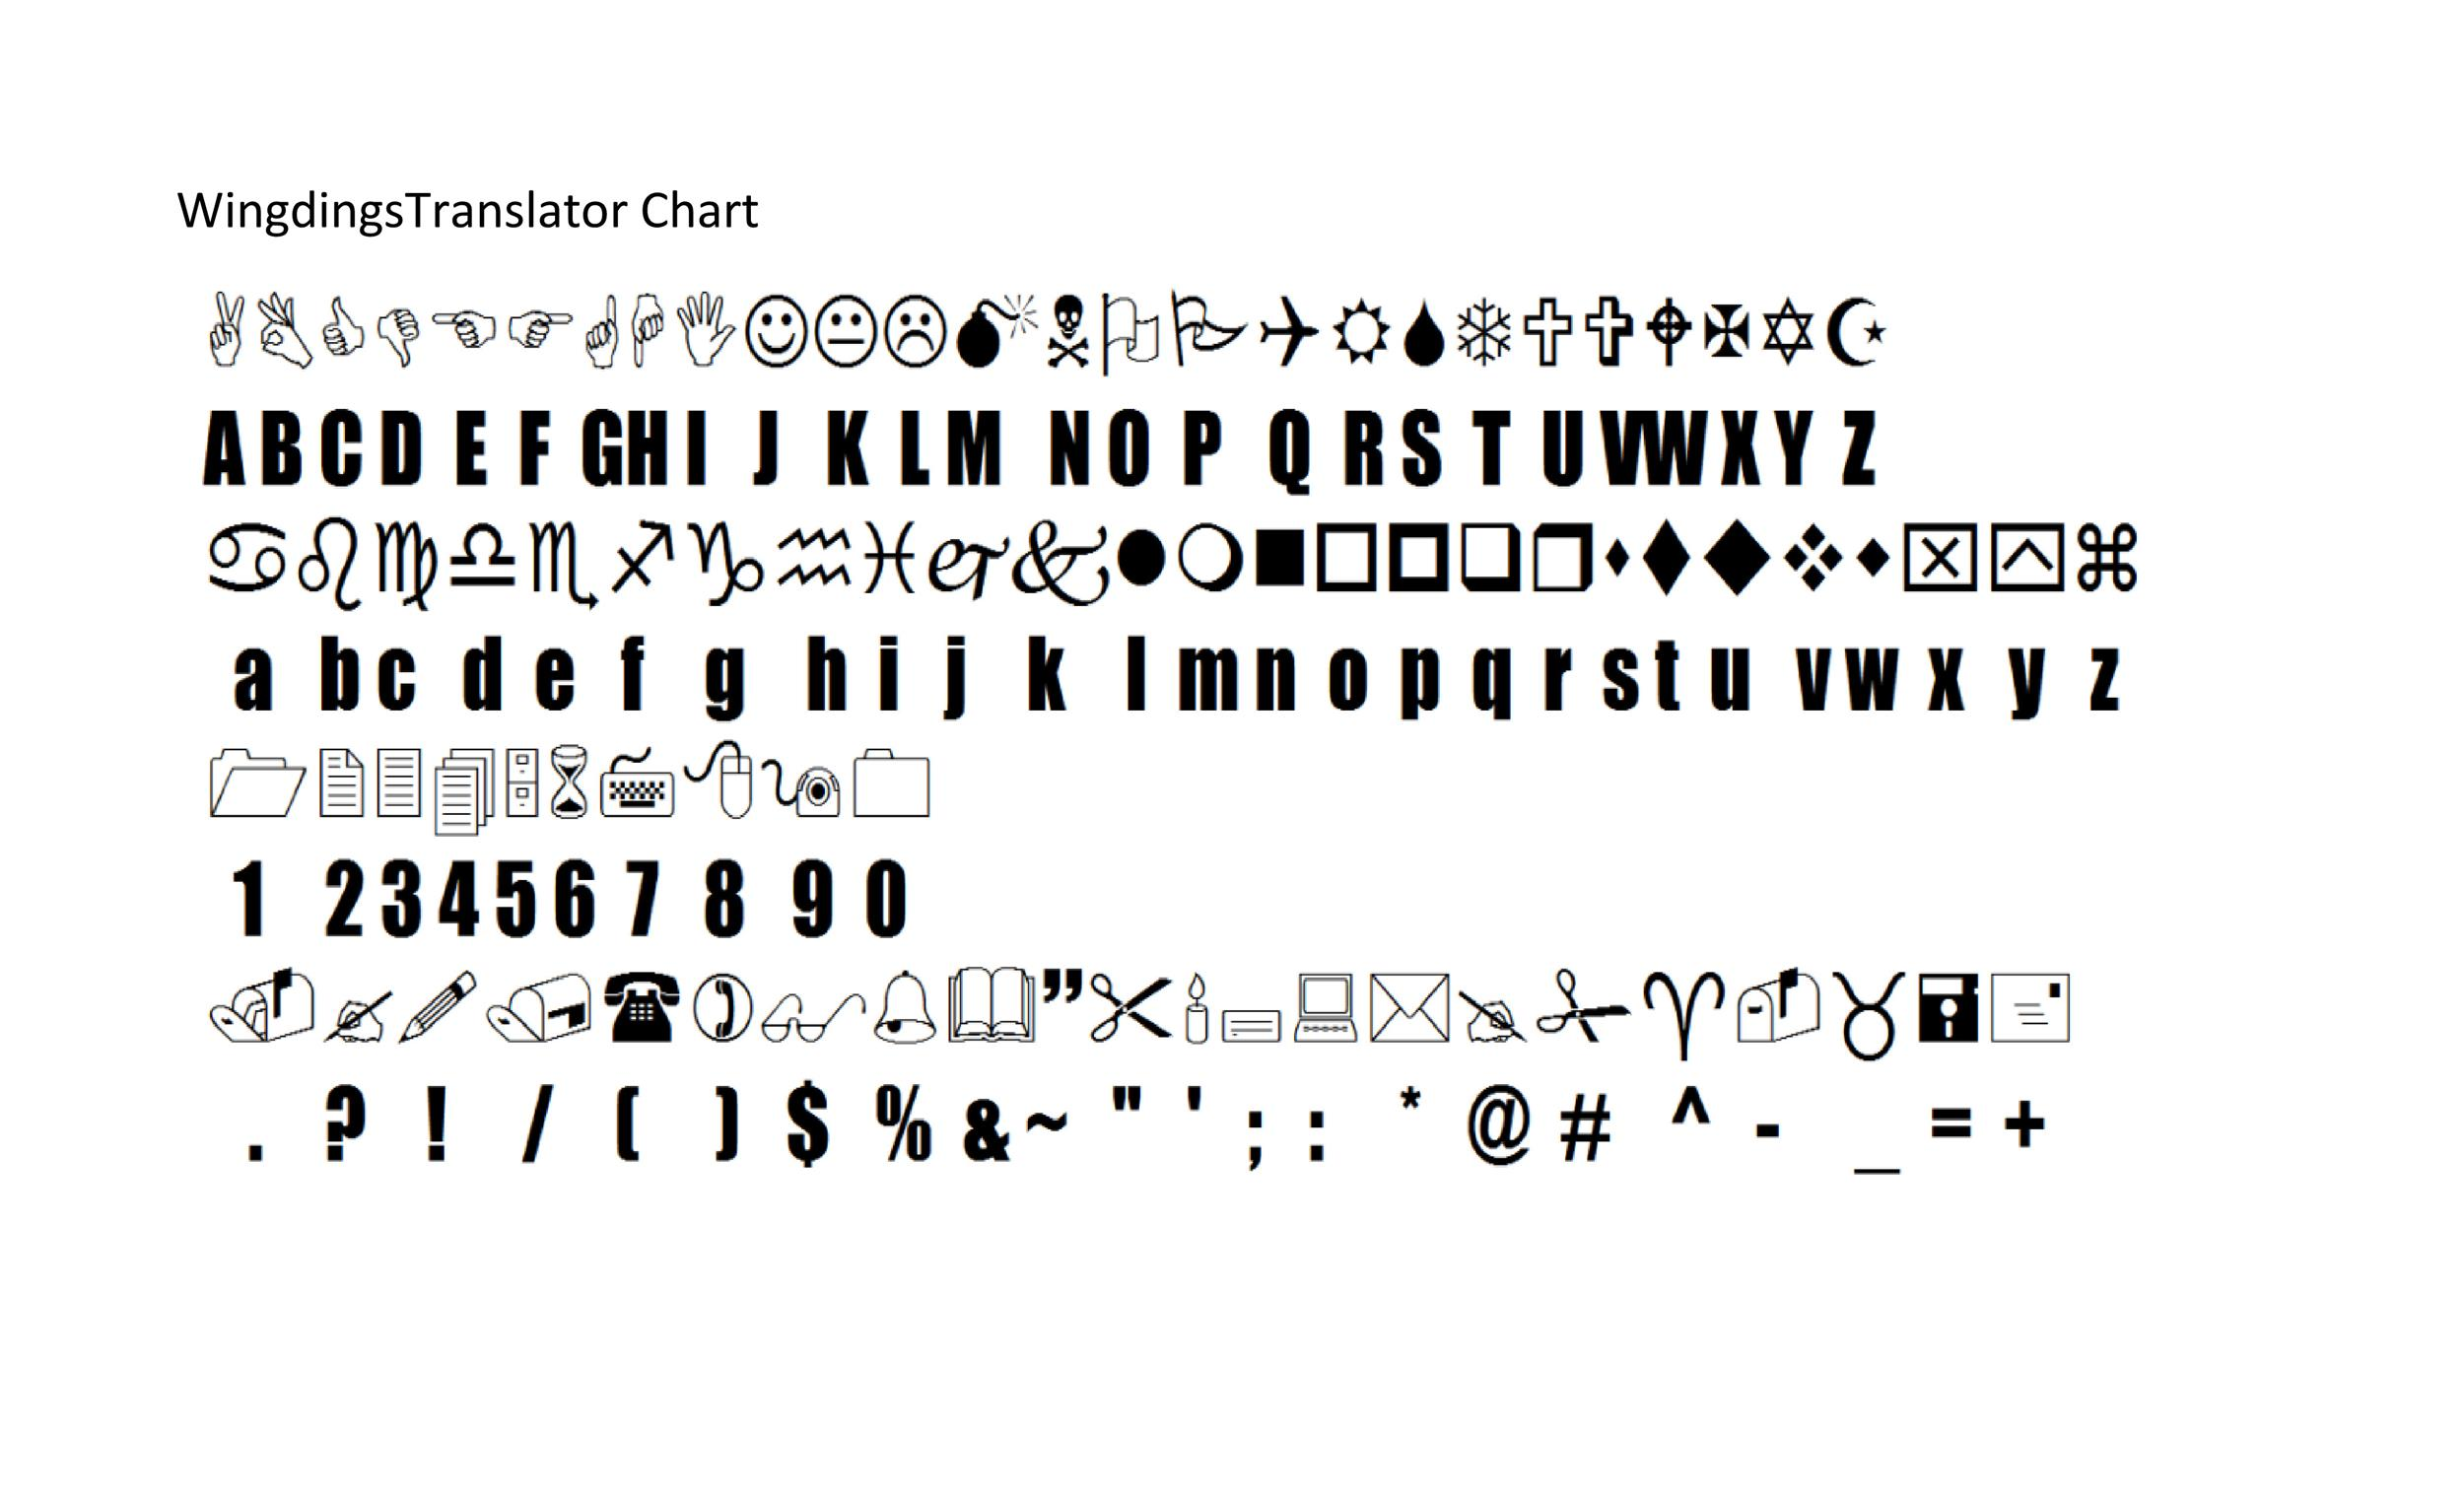 Free wingdings translator template 13